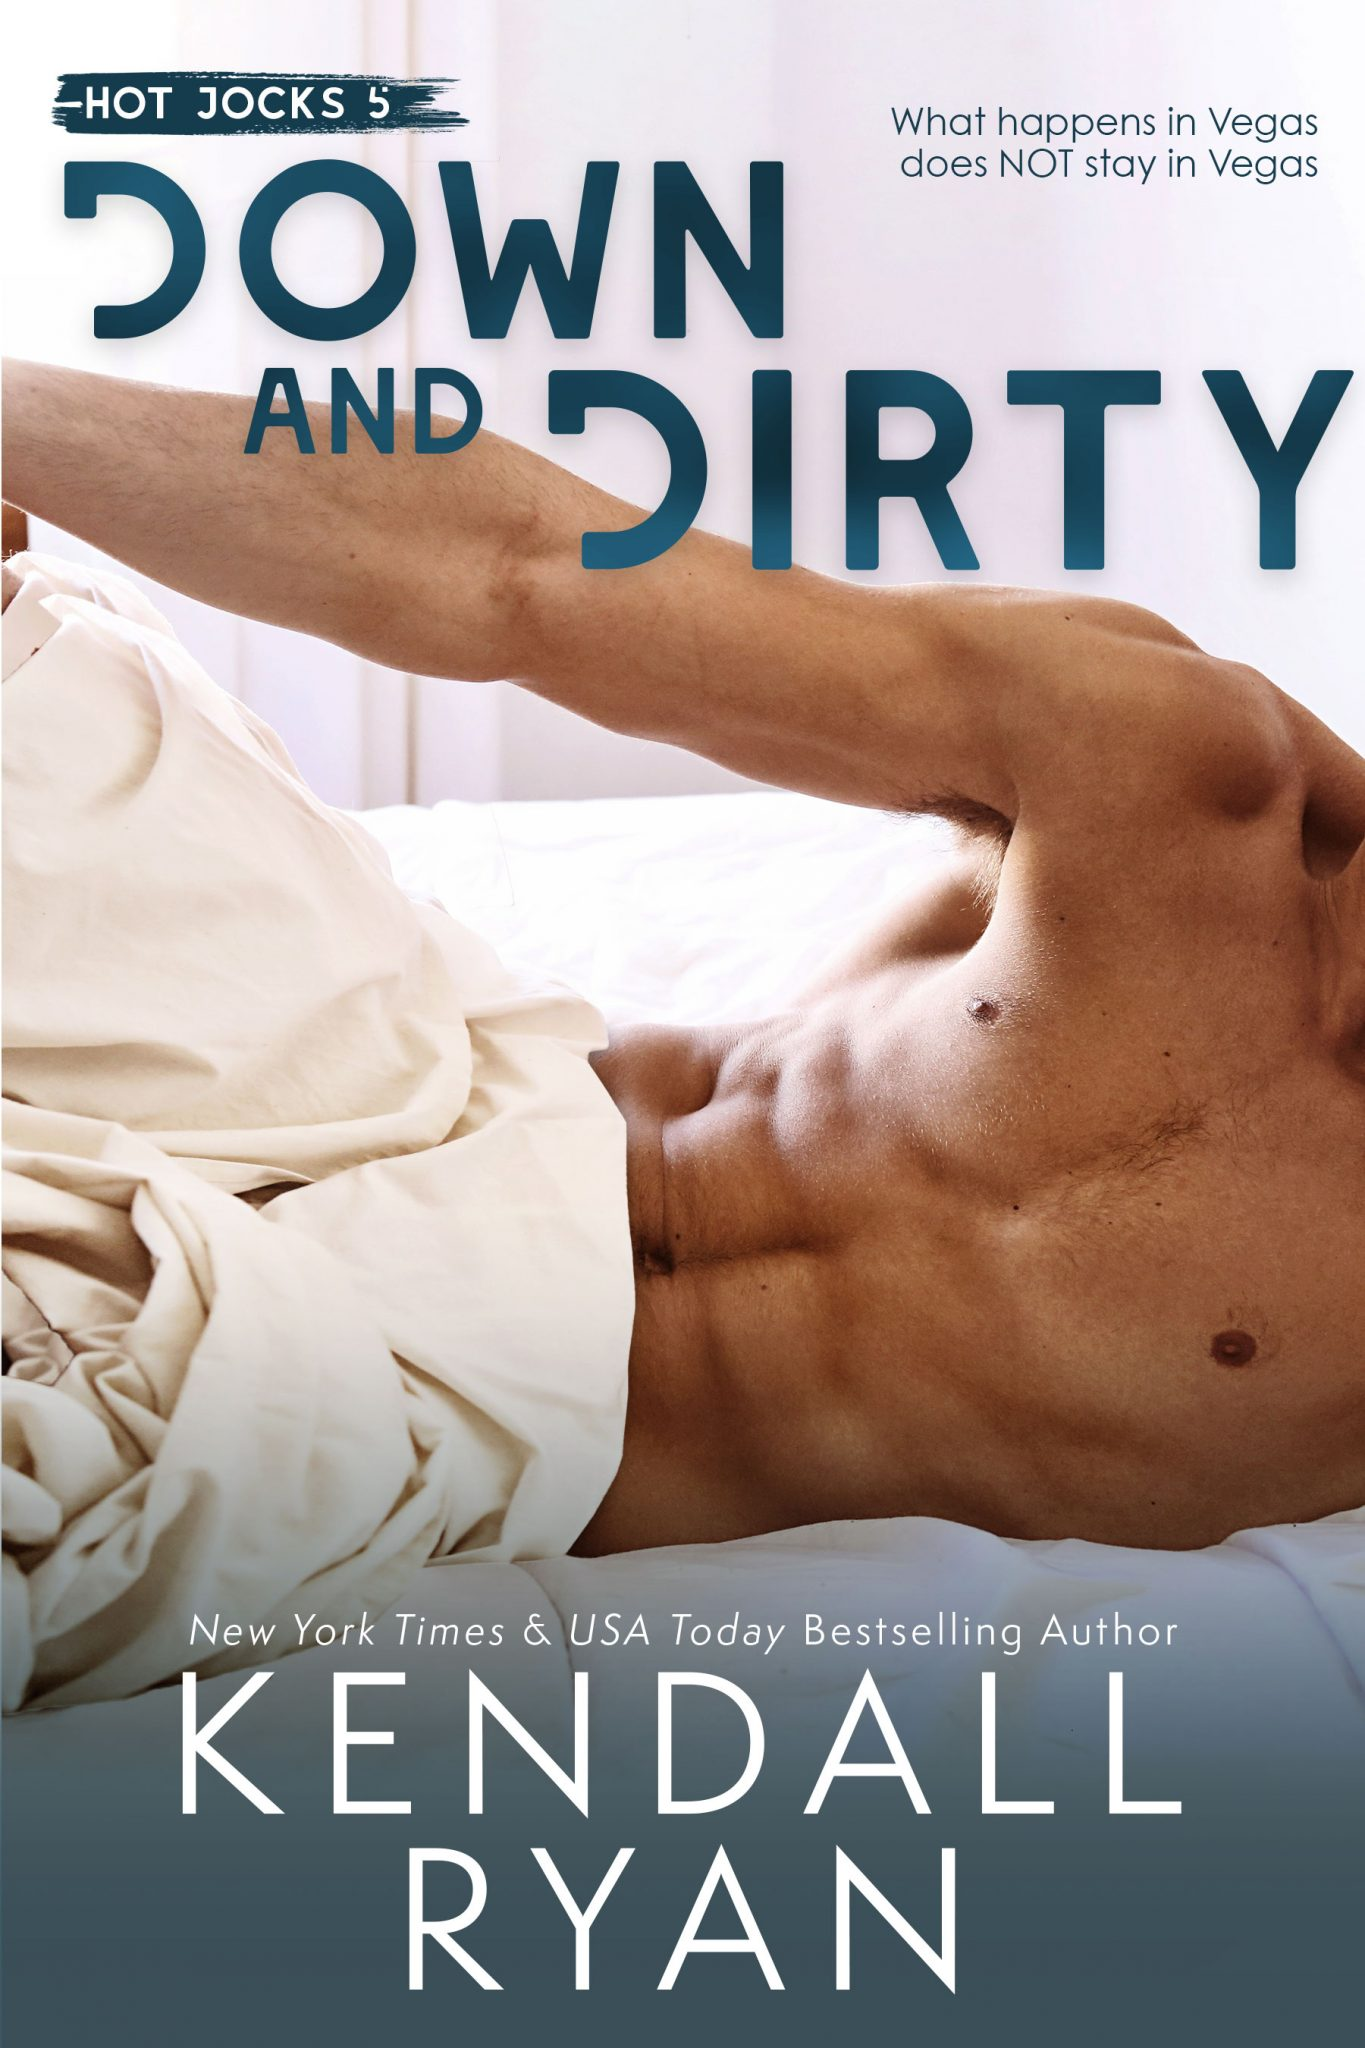 Down and Dirty by Kendall Ryan